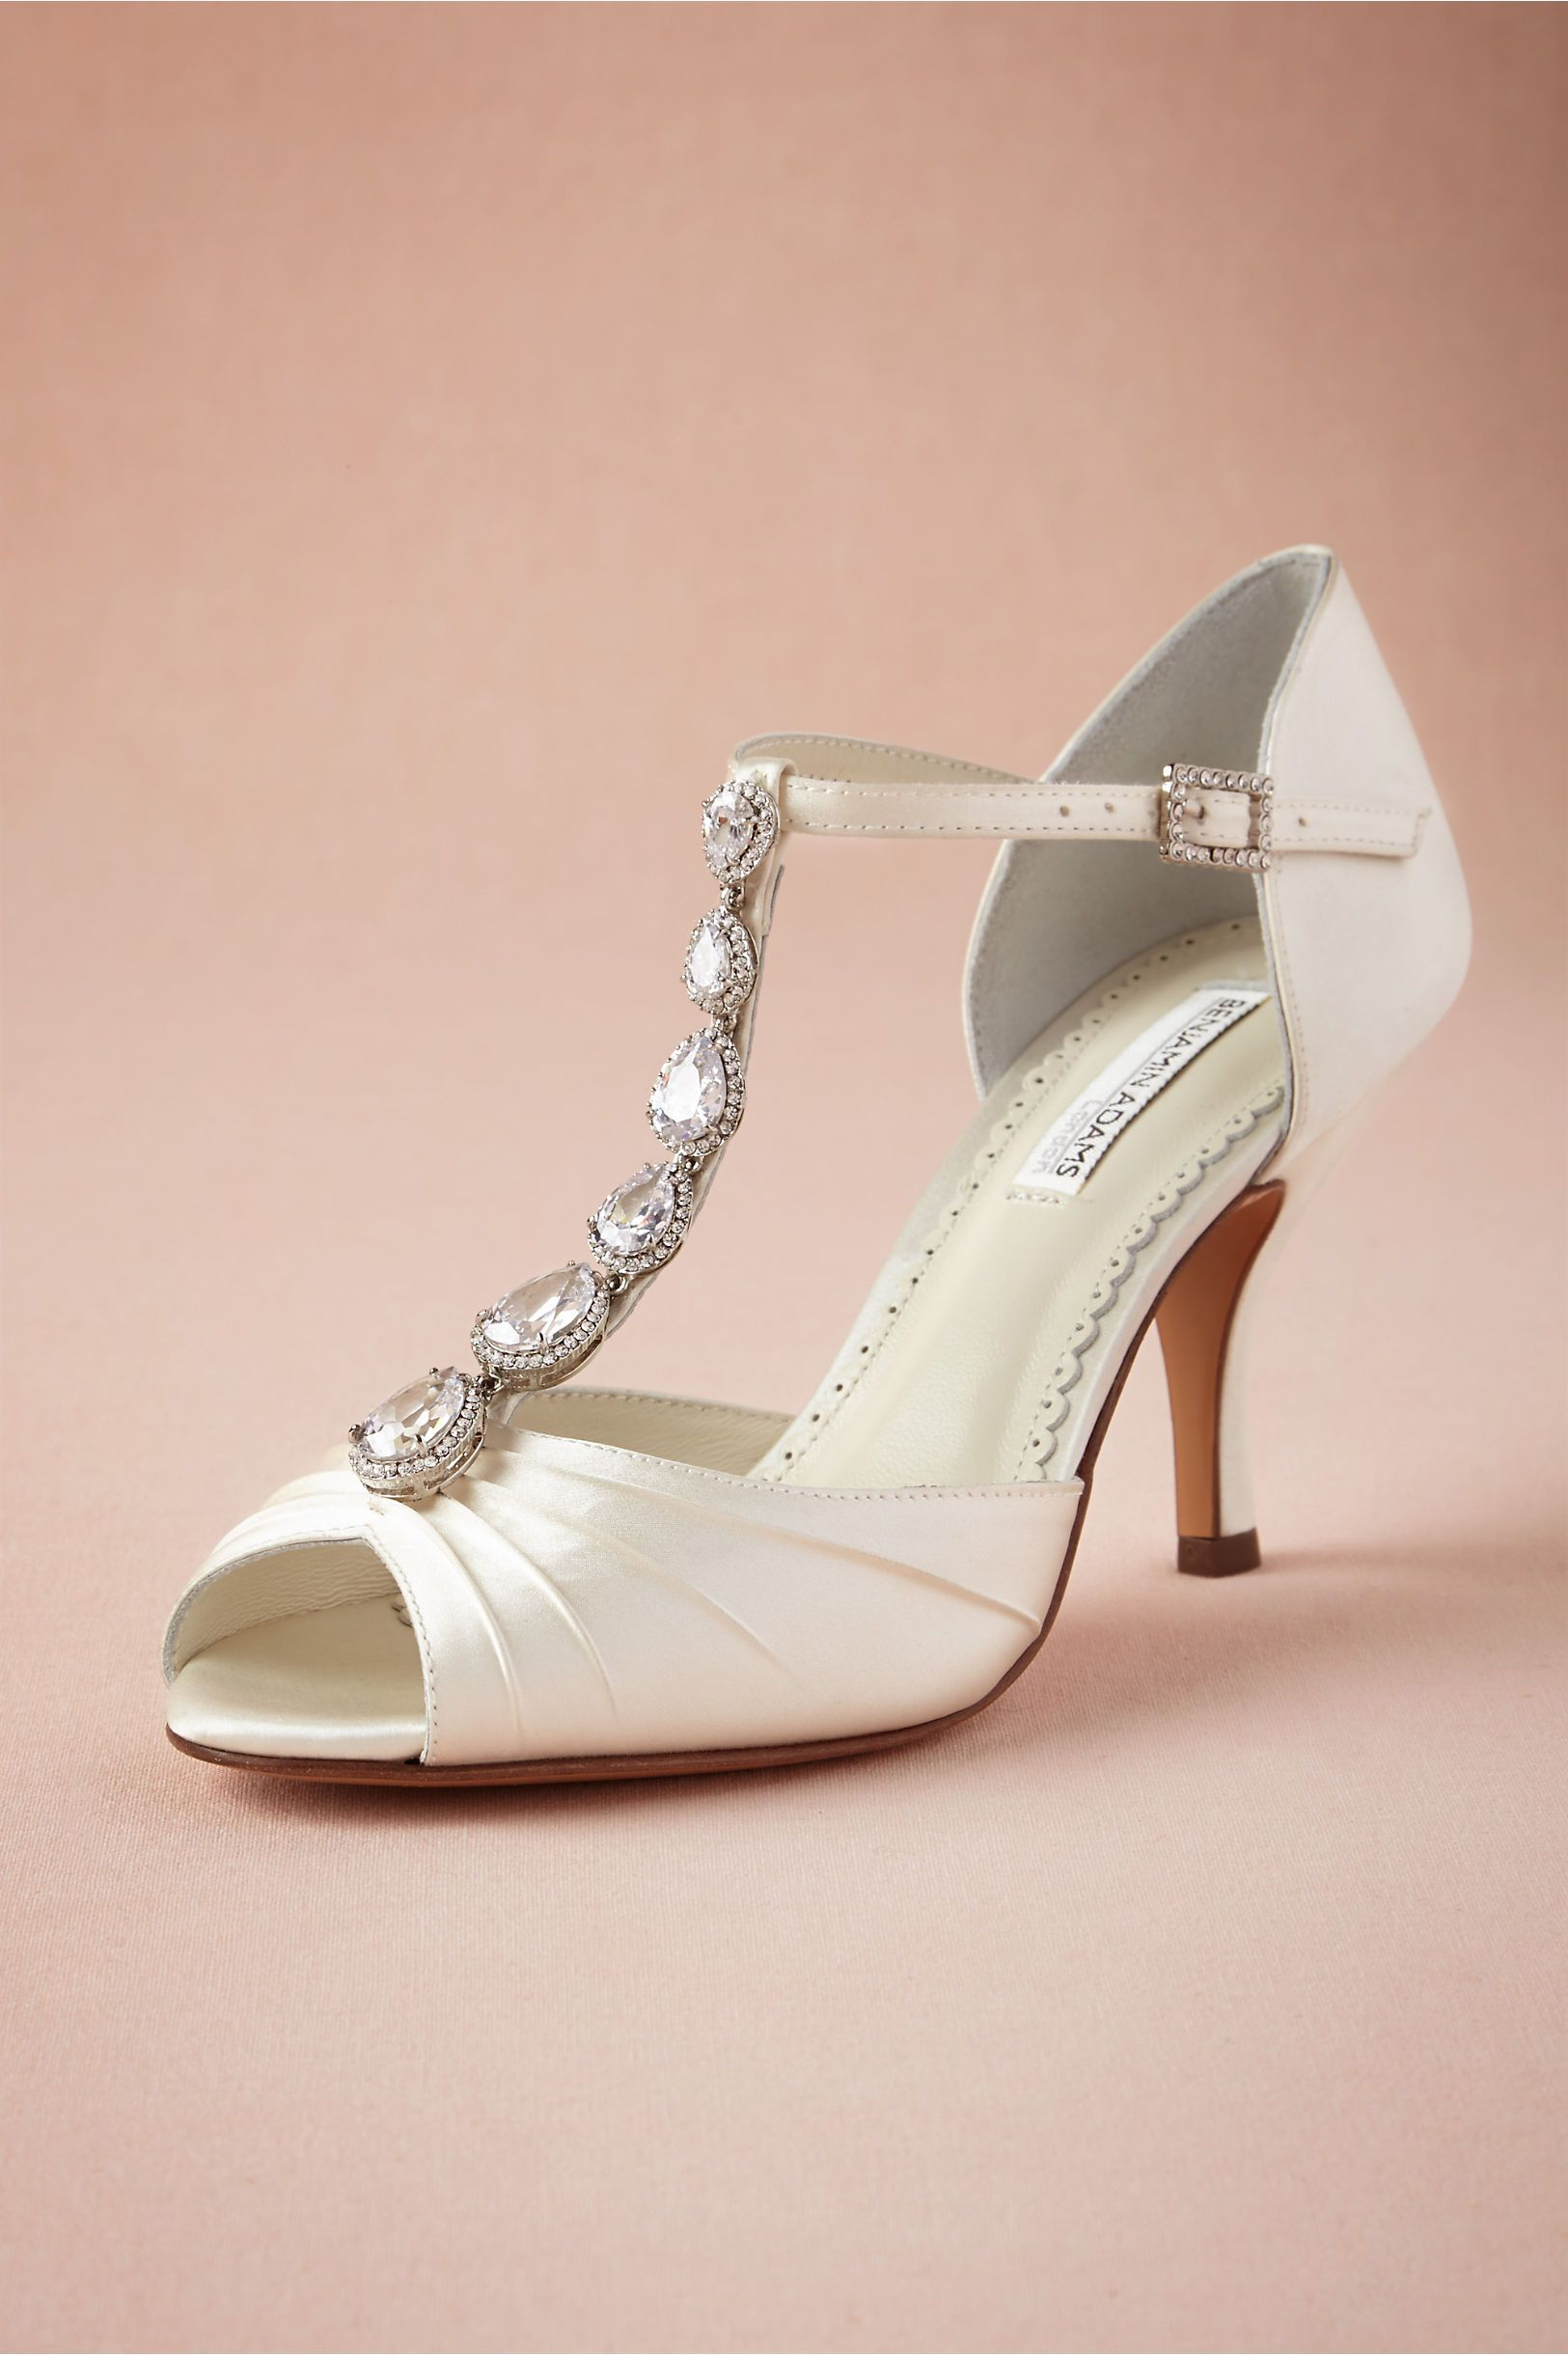 407988c092f The most beautiful and comfortable shoes ever. Love them! Jewel ...